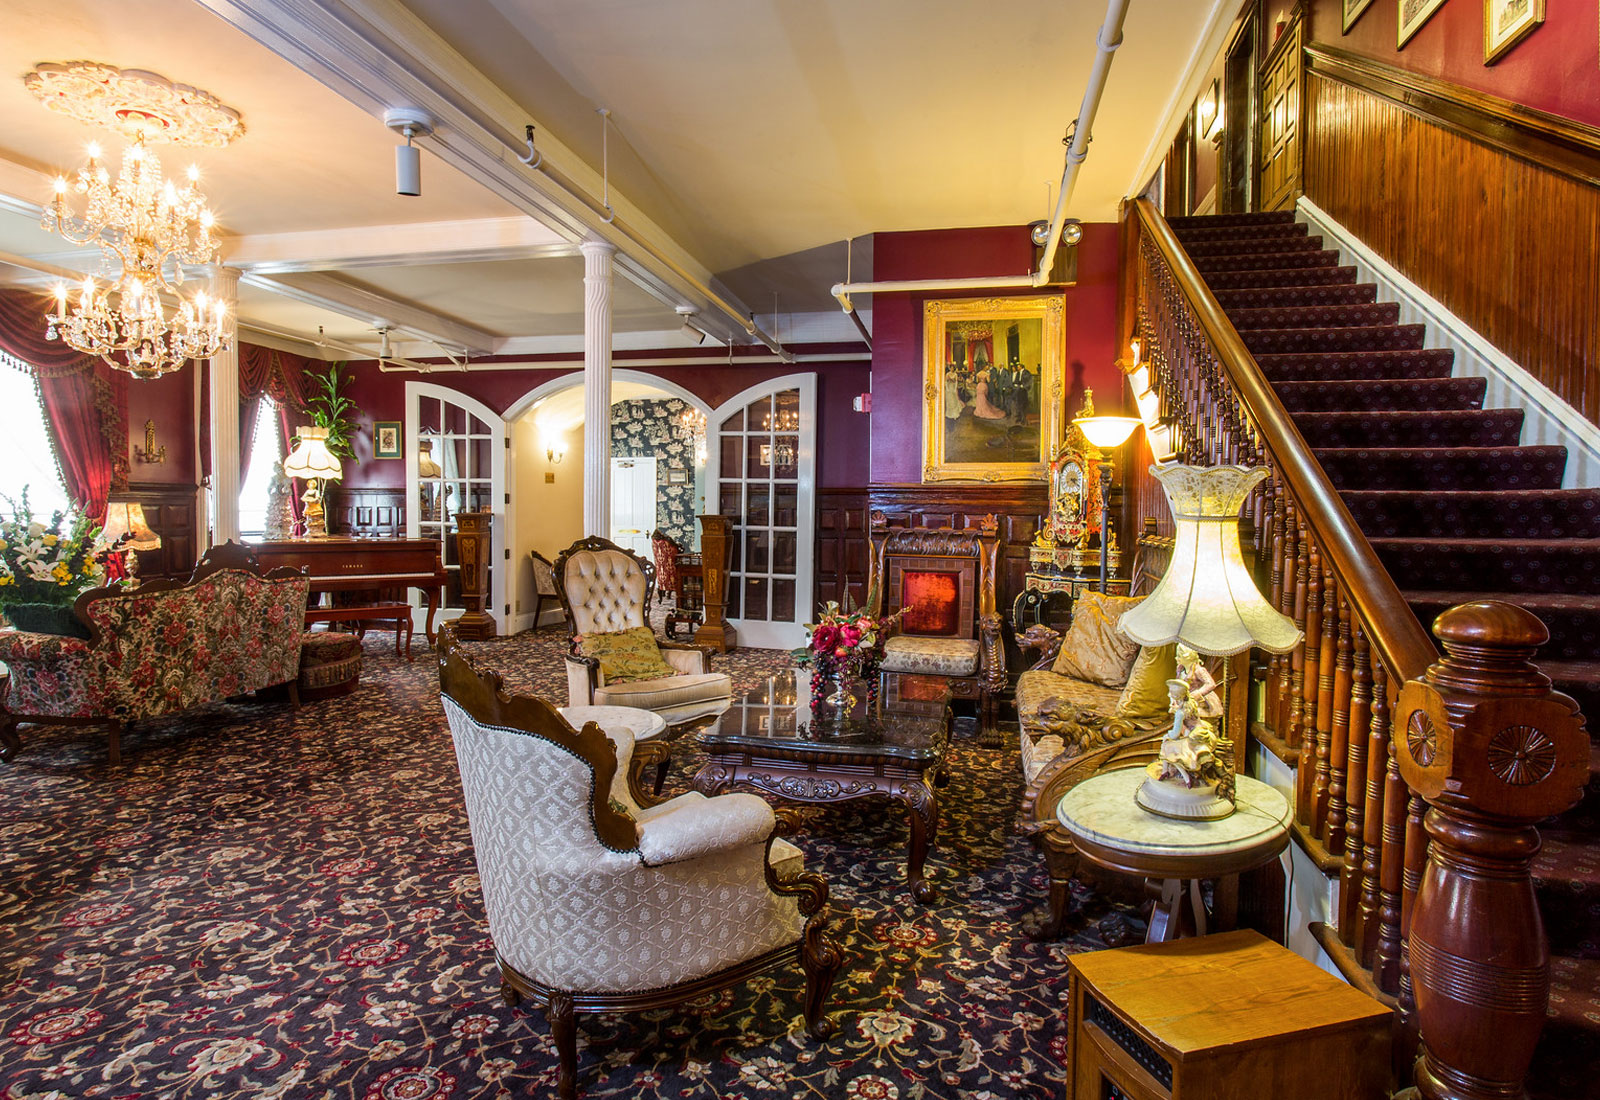 http://www.queenanne.com/resourcefiles/mainimages/queen-anne-hotel-san-francisco-top.jpg